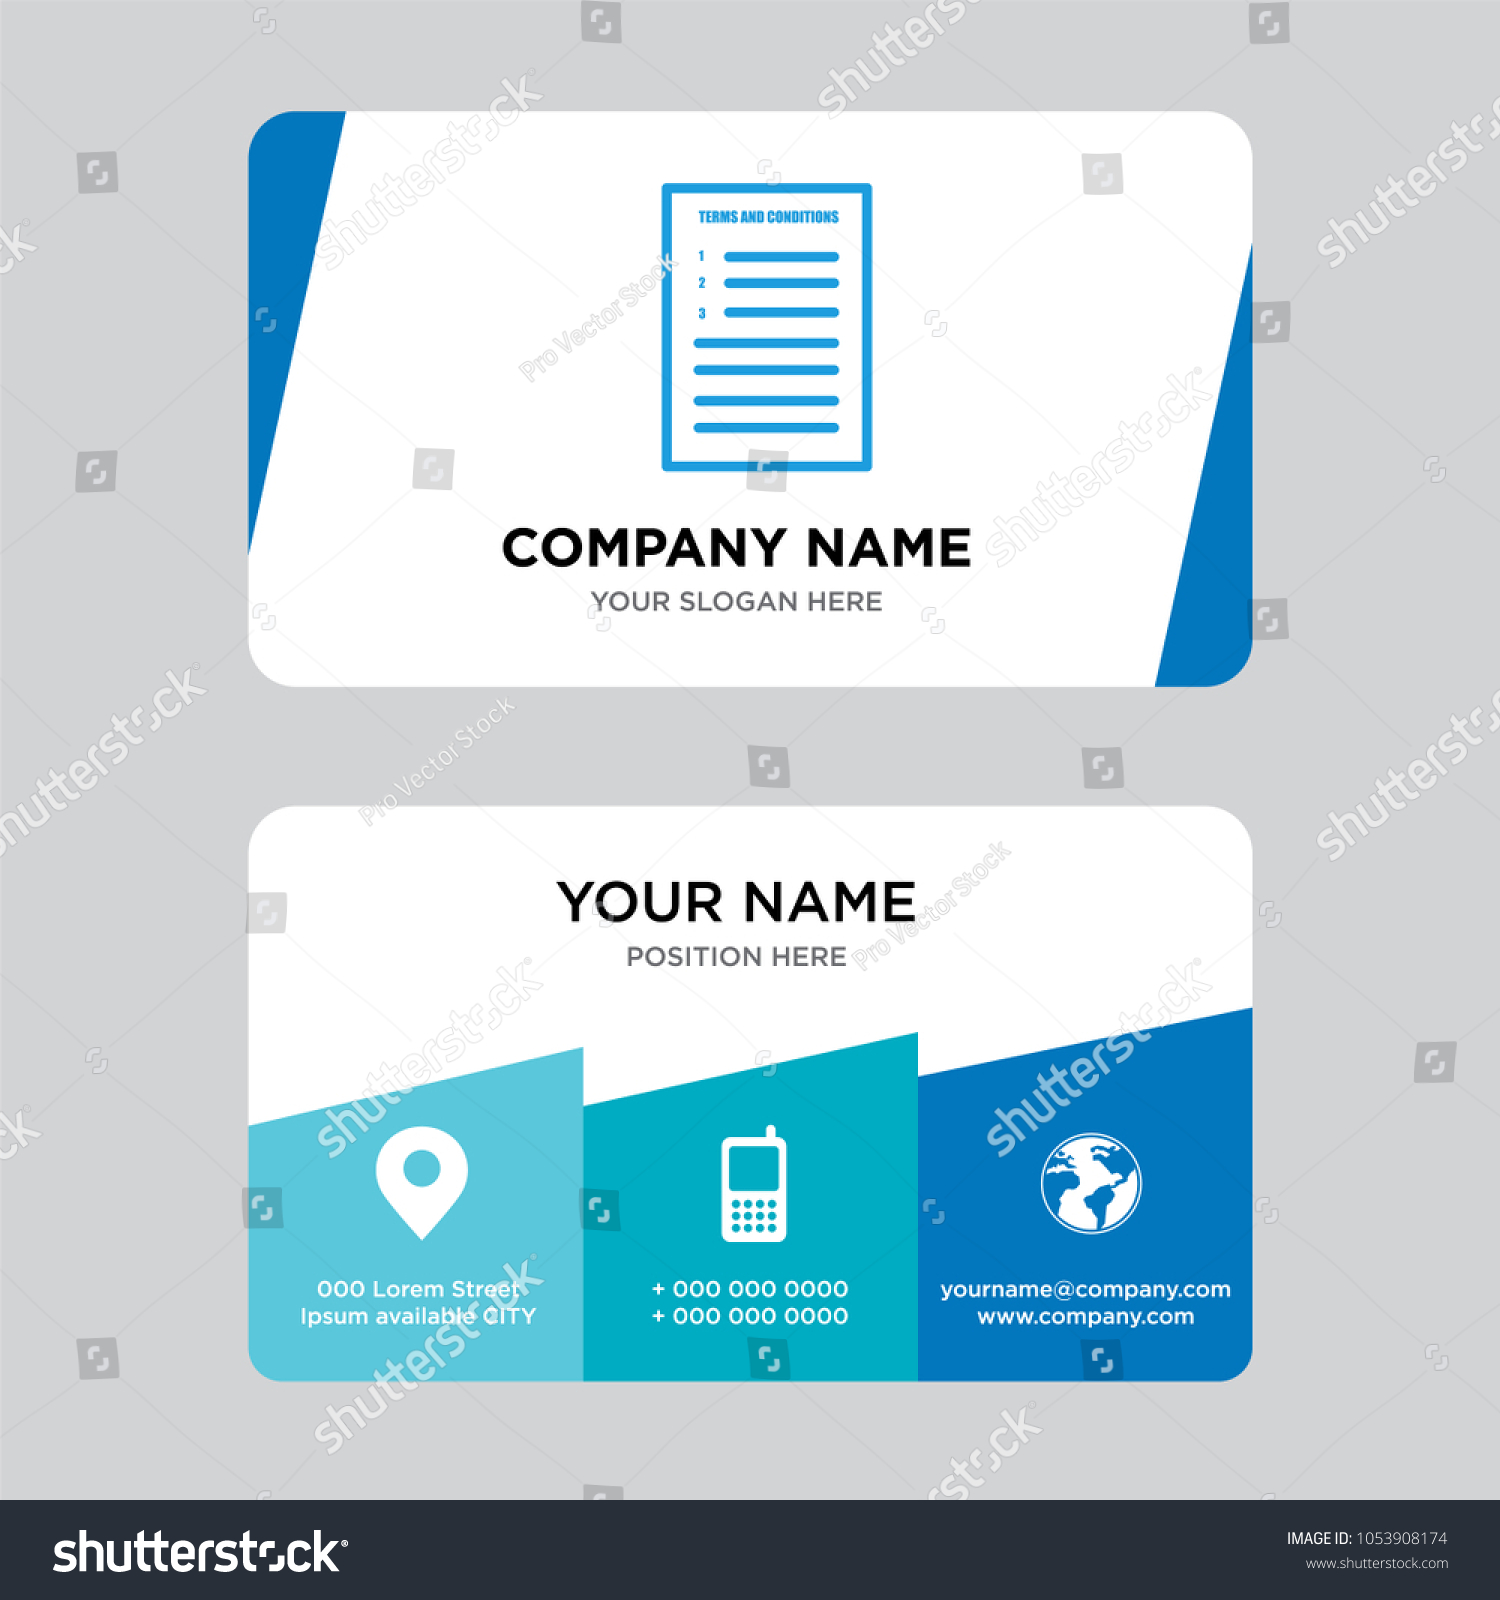 graphic design terms and conditions template